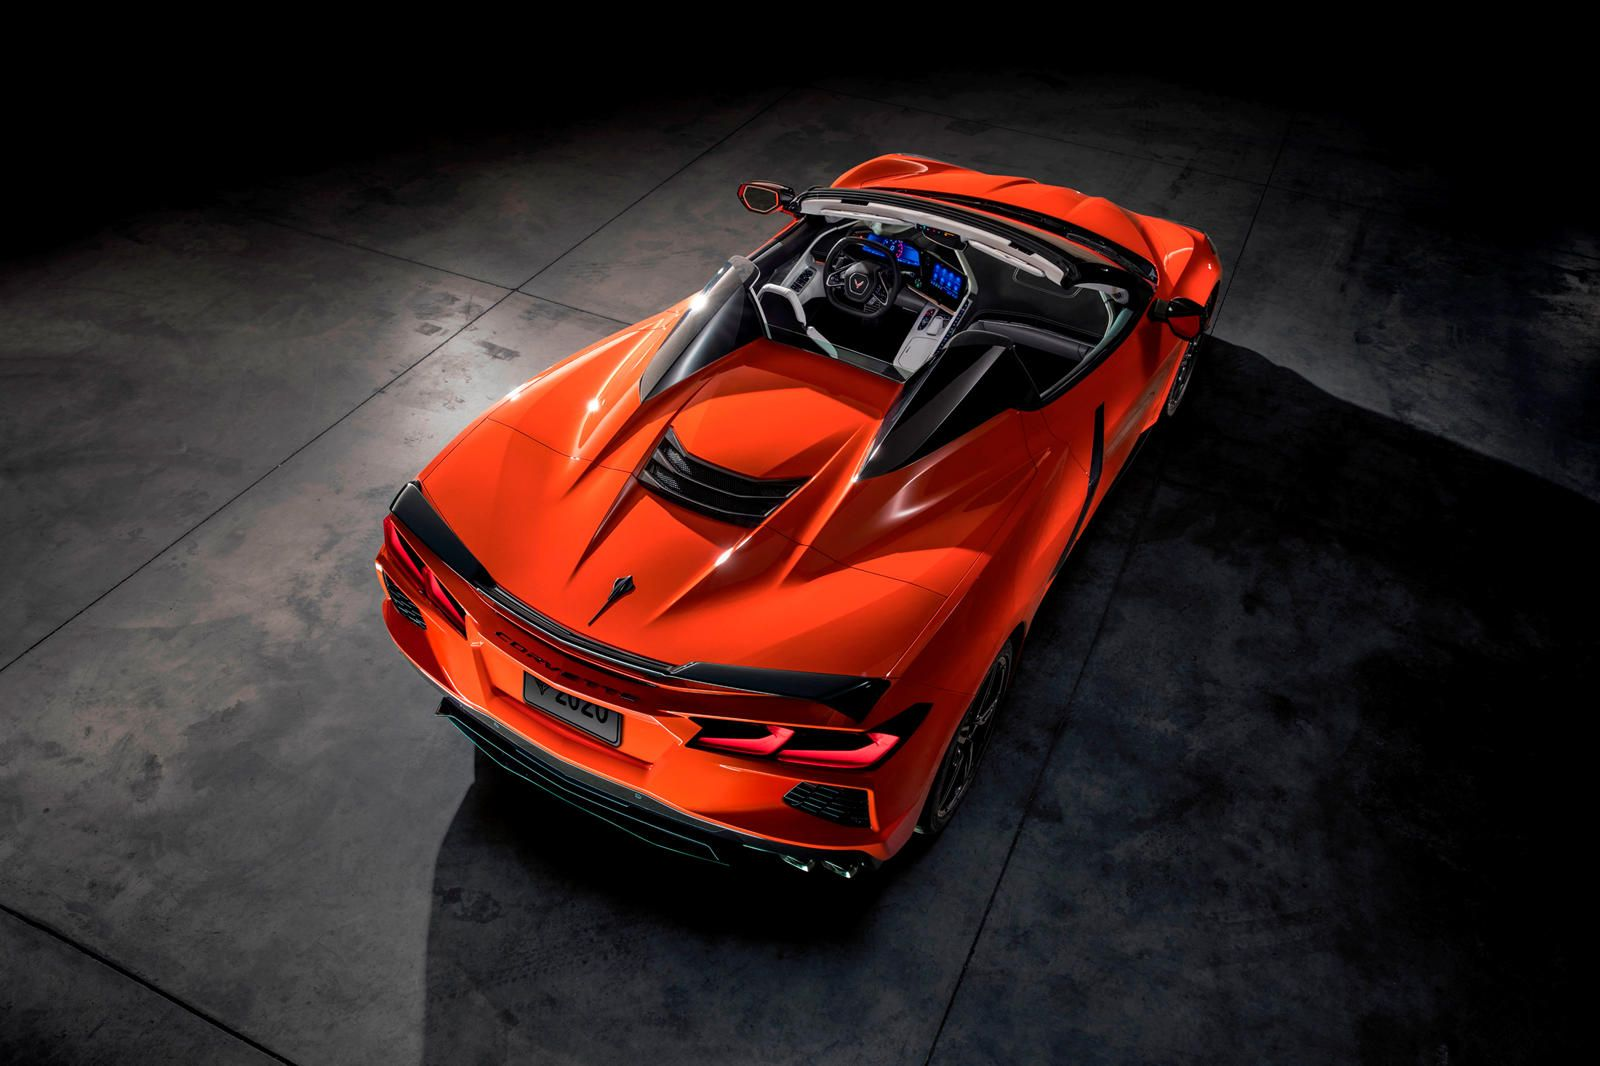 Finally 2021 Chevrolet Corvette Convertible Production Begins It Ll Be Worth The Wait Chevrolet Corvette Stingray Corvette Stingray Chevrolet Corvette